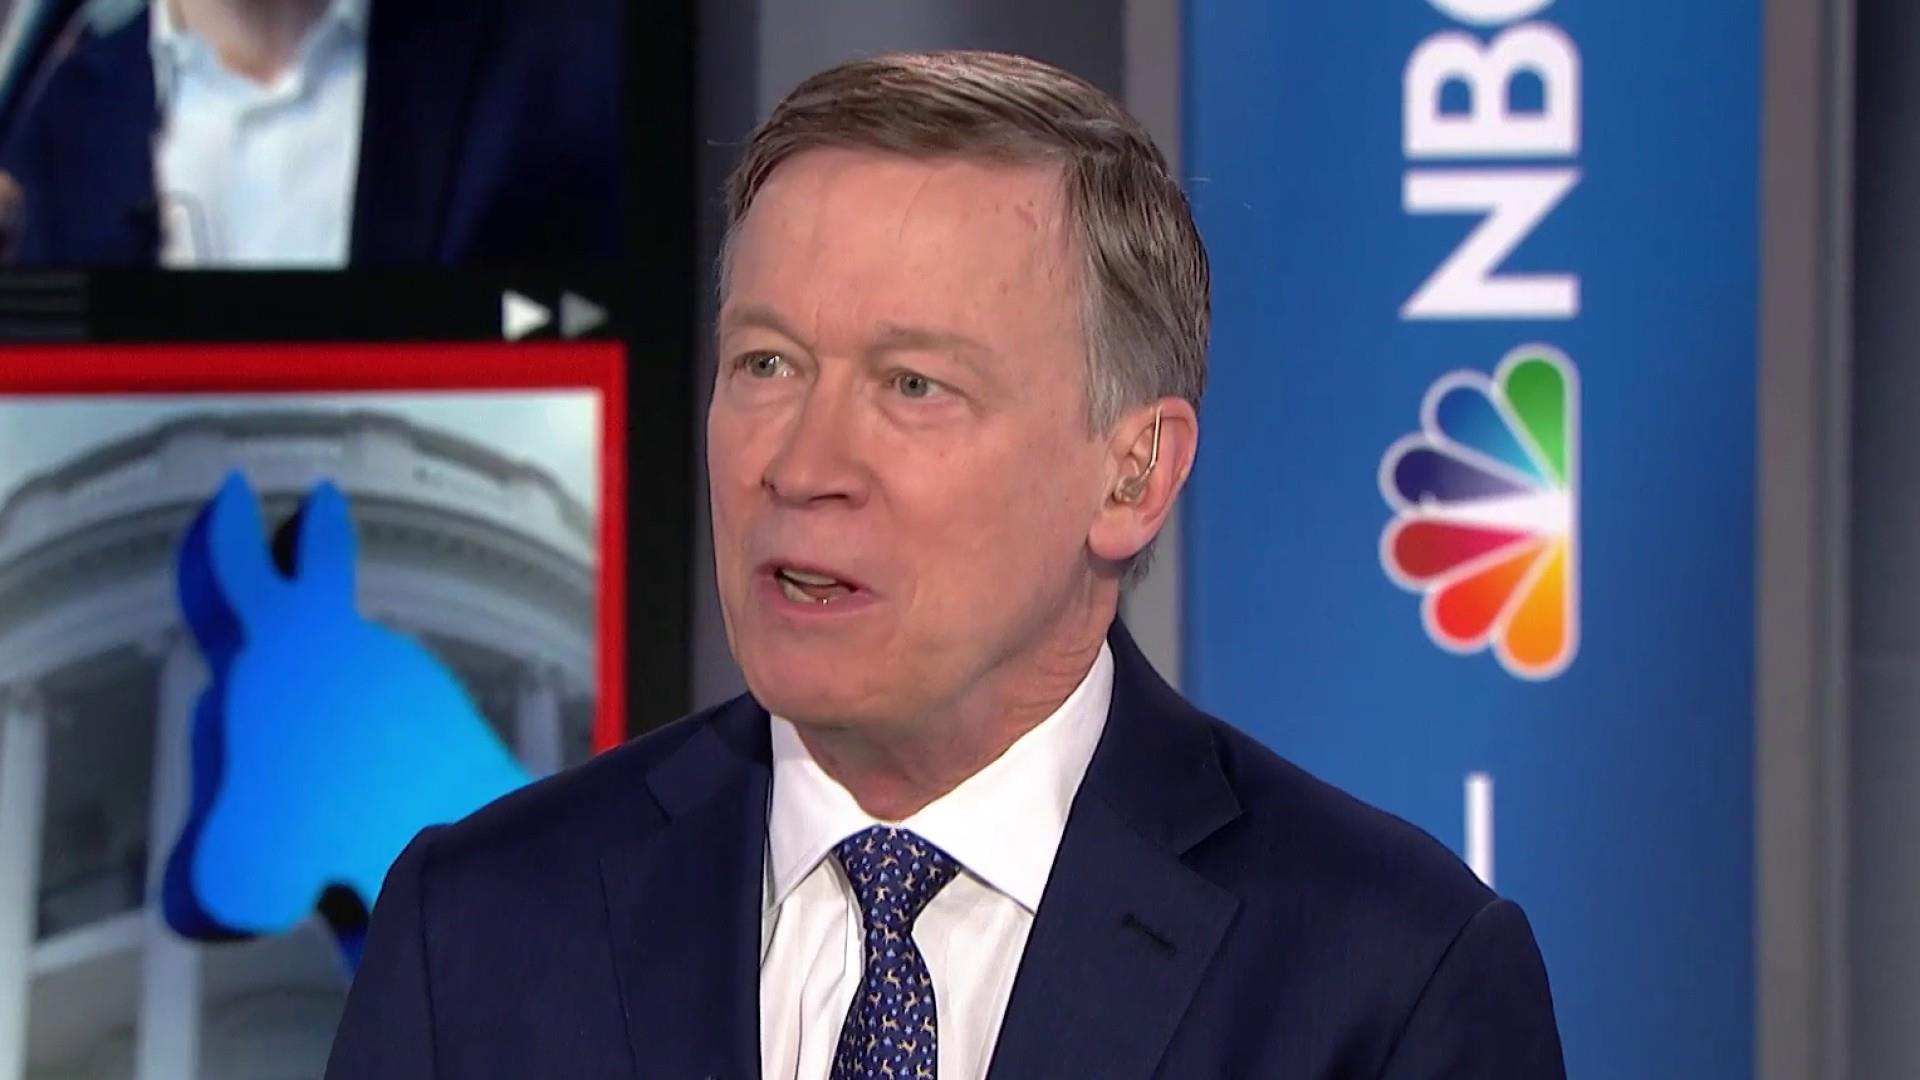 Hickenlooper: 'There is a quiet majority of Democrats frustrated by the parties swing to the left'